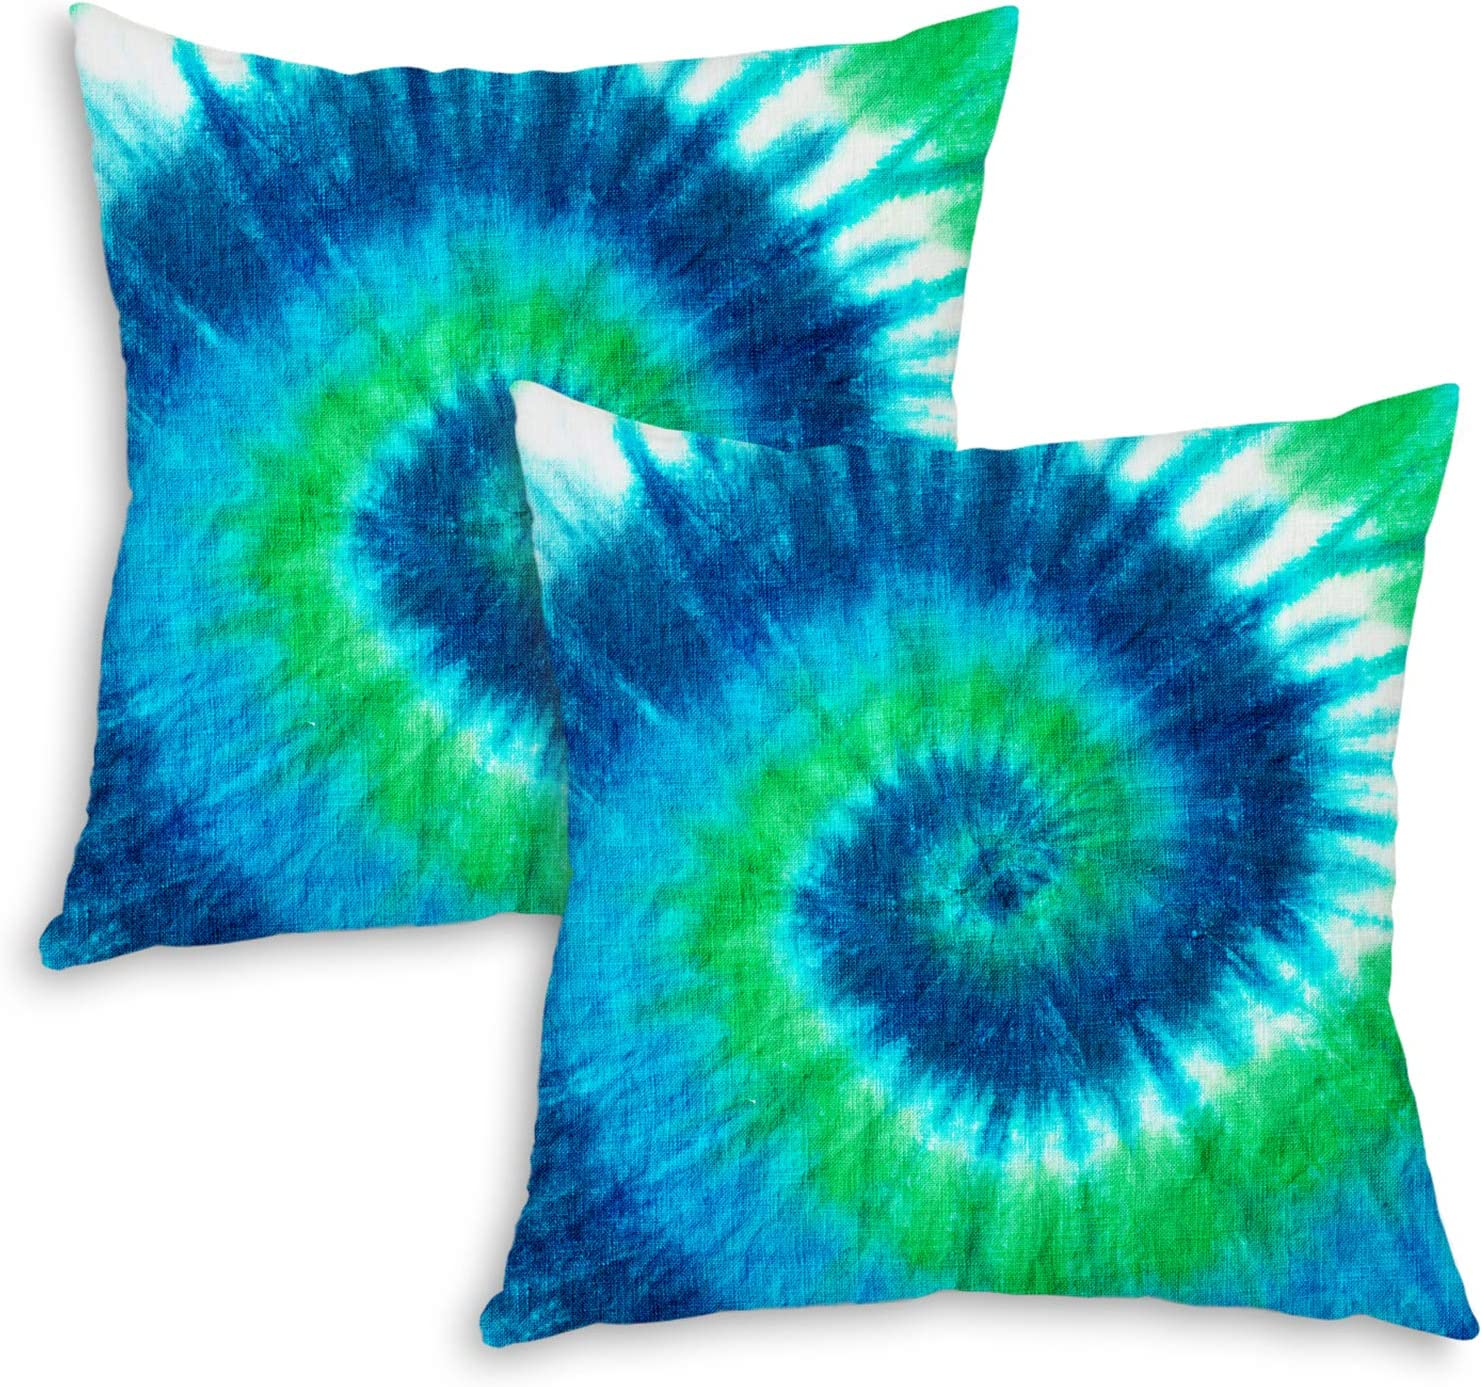 QoGoer Tie Dye Pillow Covers, Rainbow Decor Pillow Case 18 x 18 Inch Set of 2, Colorful Pattern Design Cushion Covers for Home Car Sofa Bedding Decorative (Green)